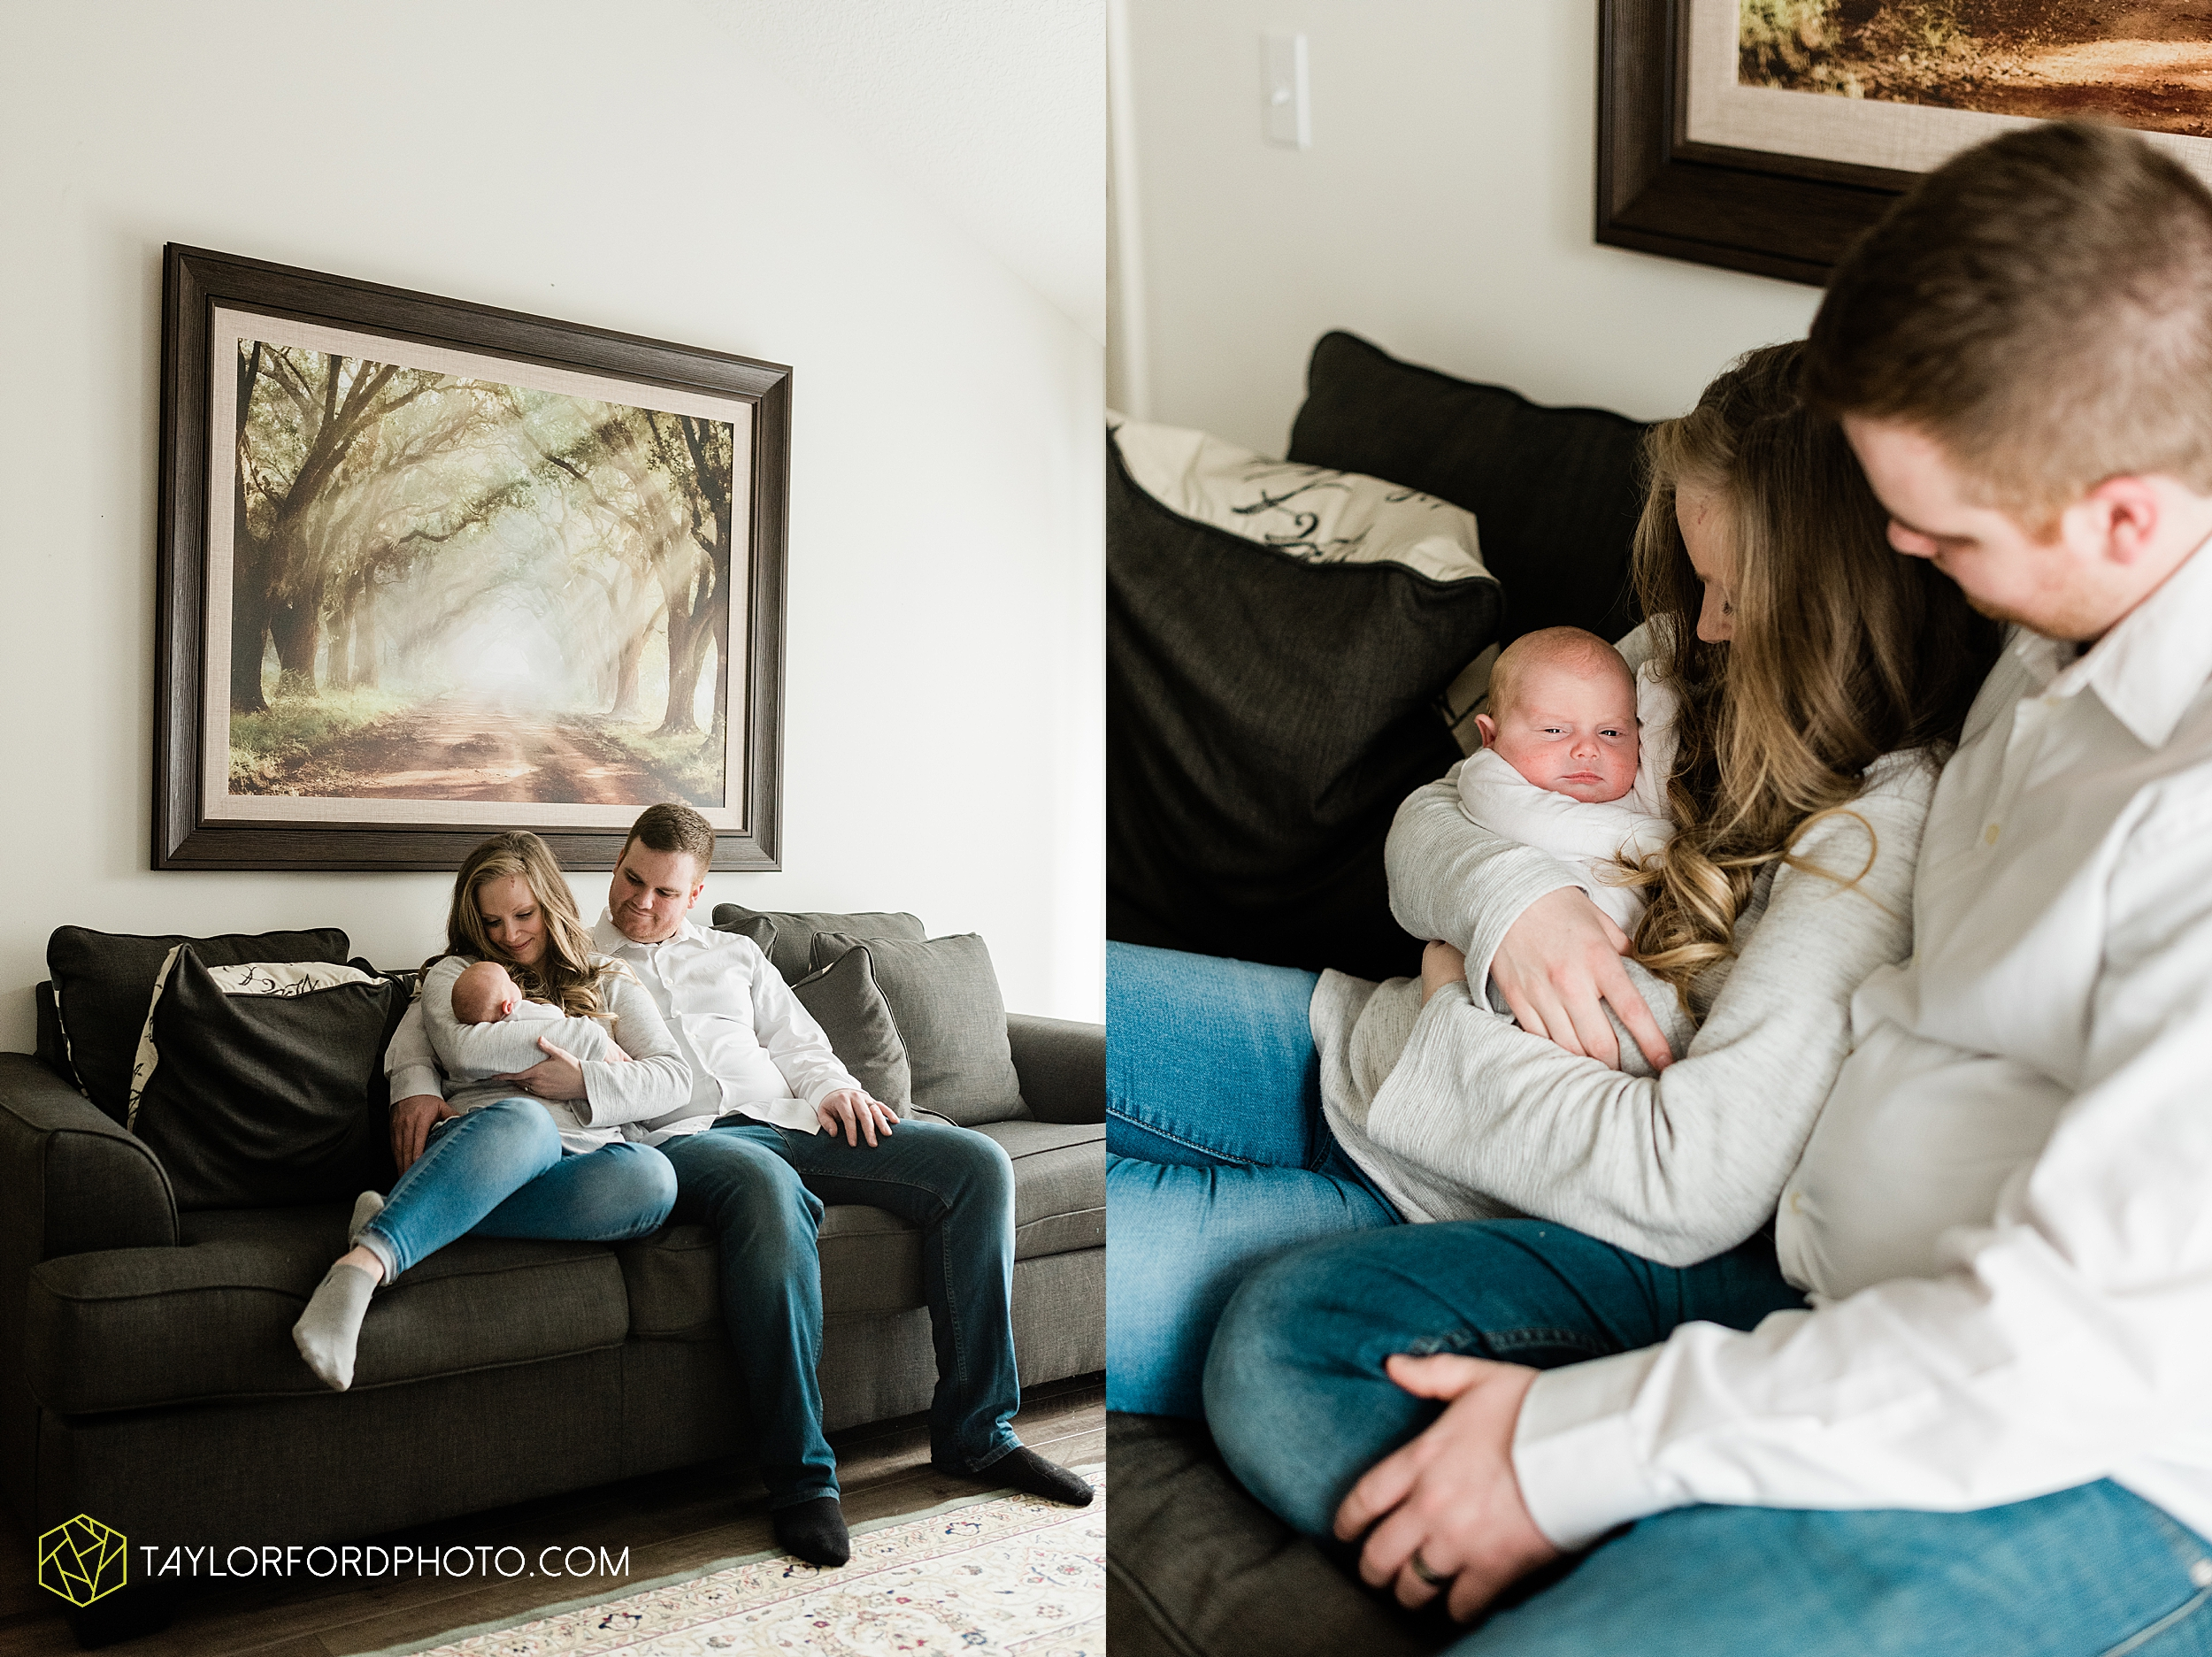 sarah-austin-harrison-lifestyle-at-home-family-newborn-fort-wayne-indiana-photography-taylor-ford-hirschy-photographer_2357.jpg